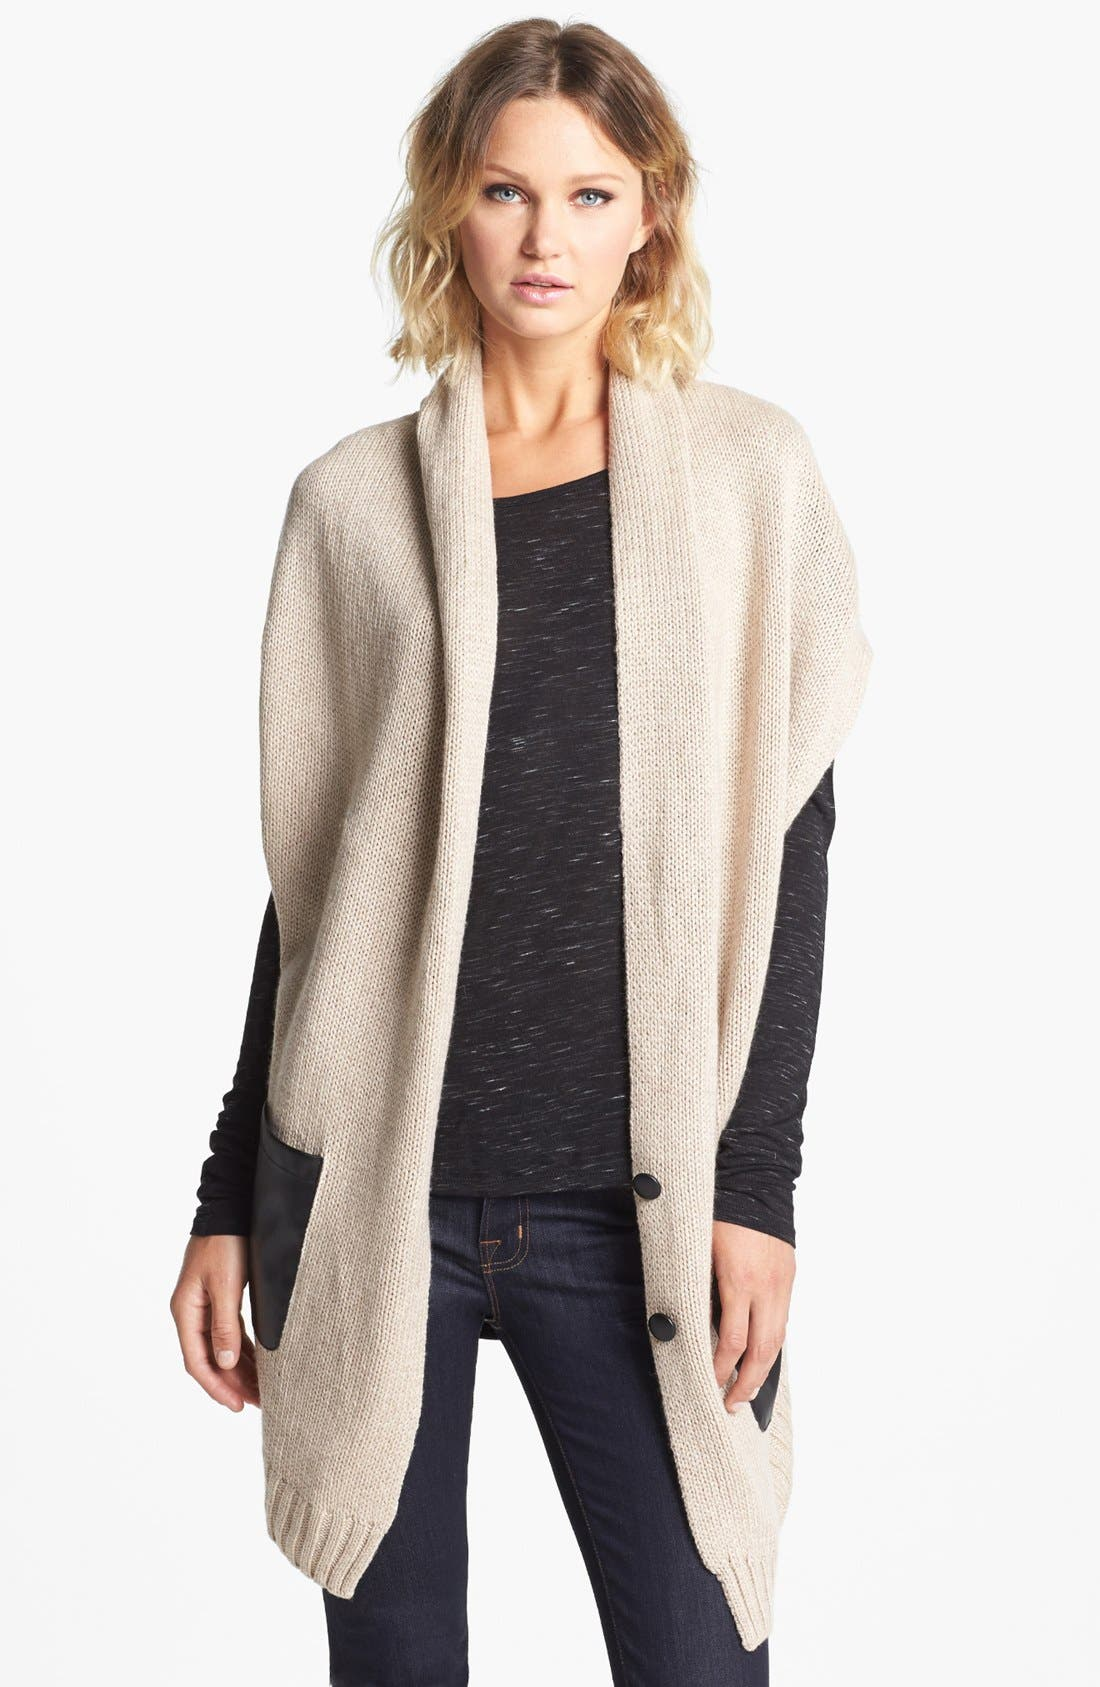 Alternate Image 1 Selected - Nordstrom Knit Vest With Faux Leather Pockets